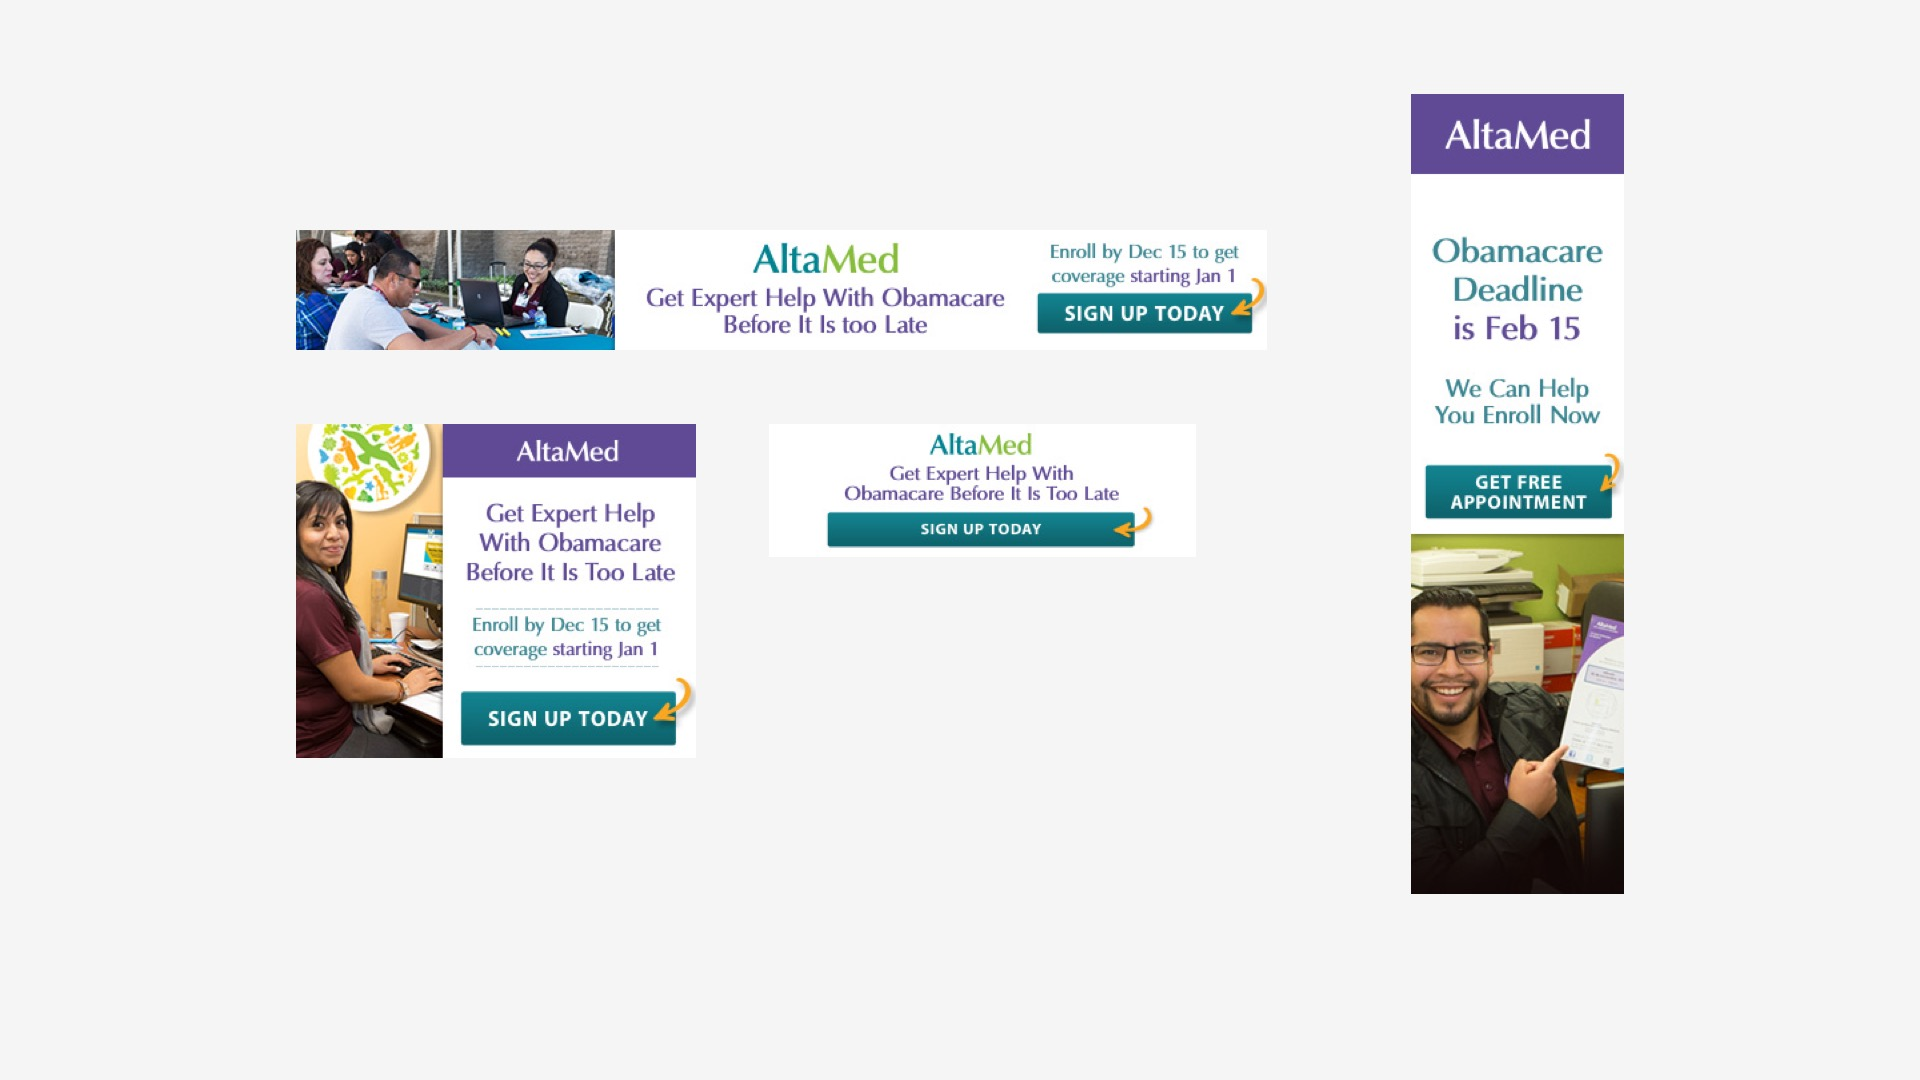 AltaMed: Affordable Care Act Campaign